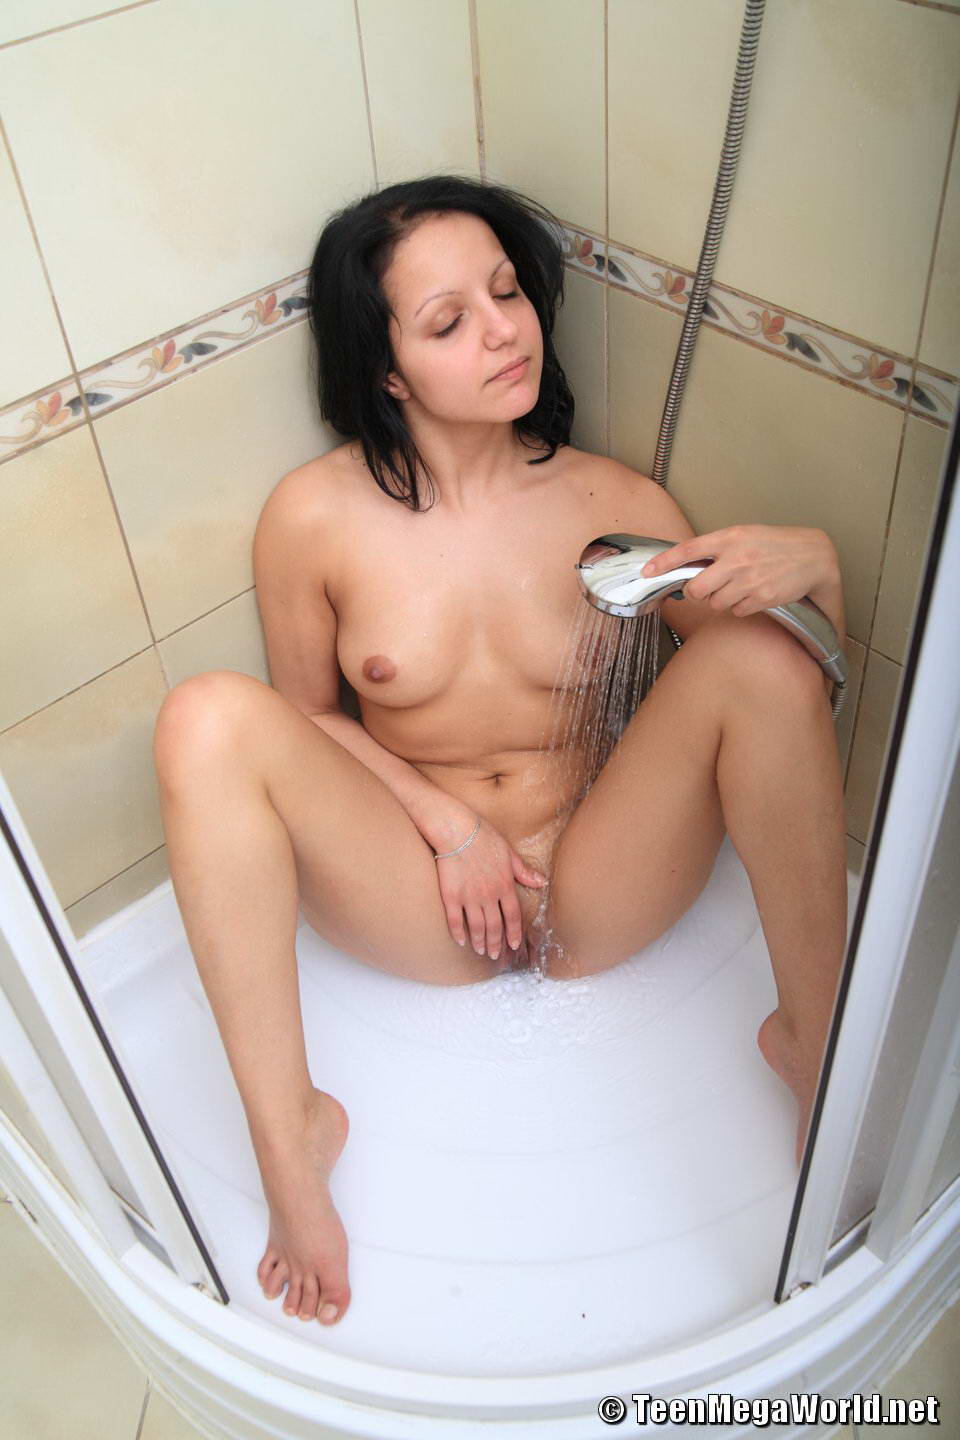 Brunette Teen Hottie Masturbates In A Shower - Picture 13